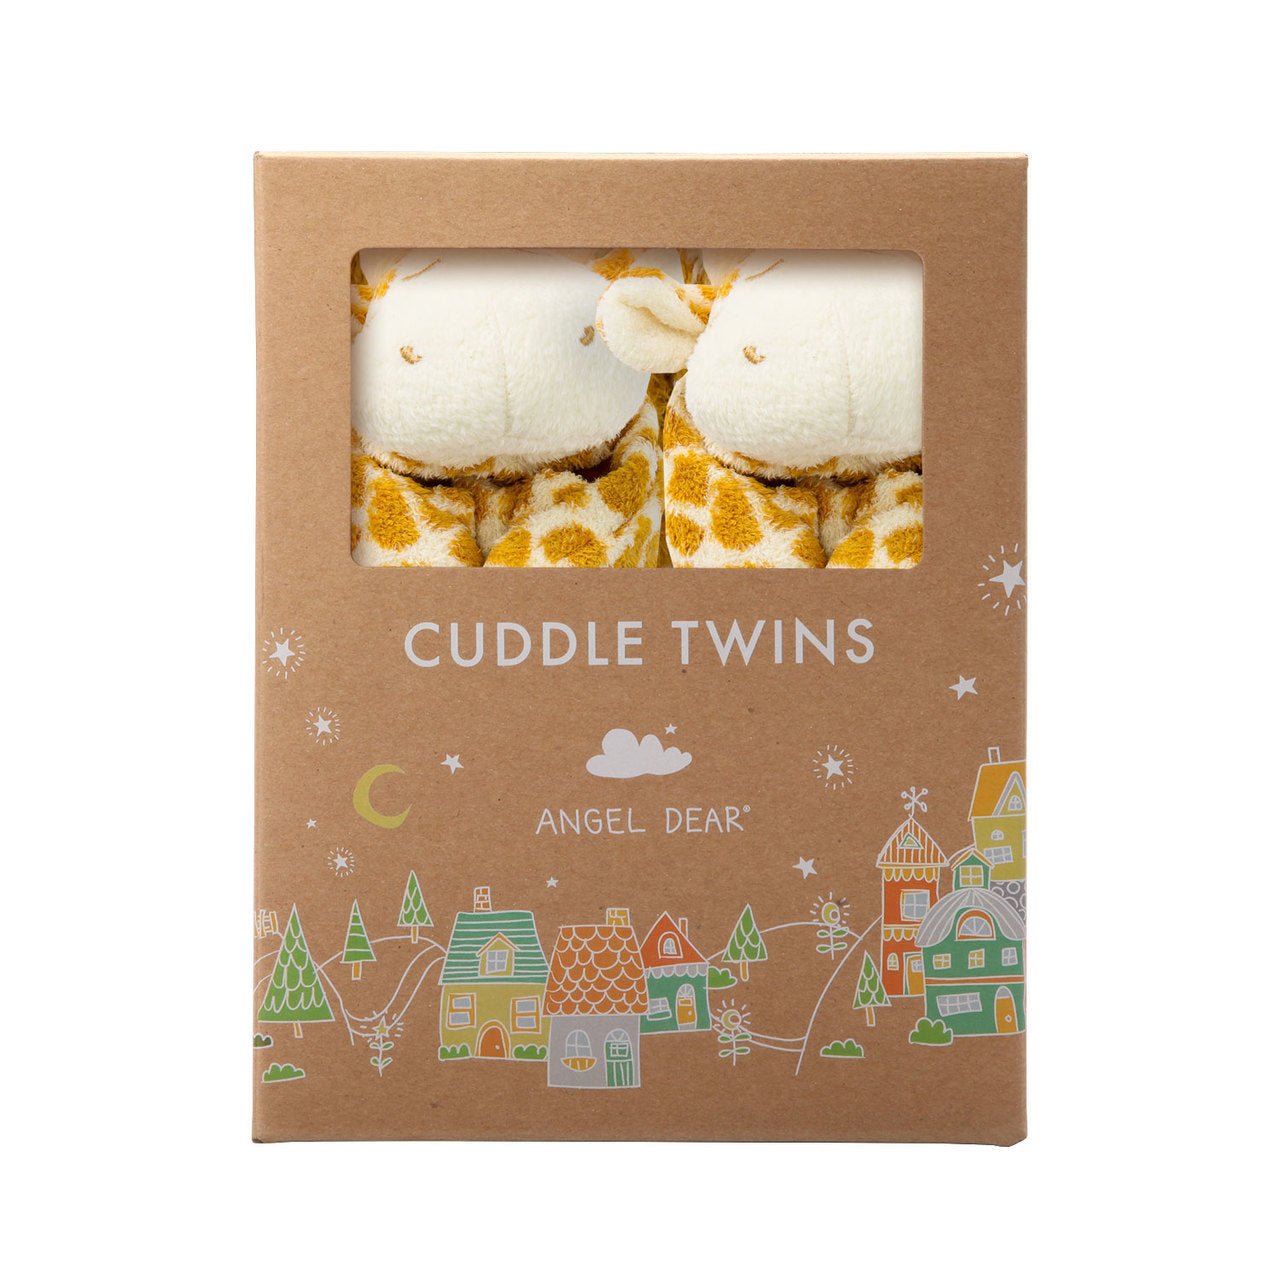 CUDDLE TWINS- TAN GIRAFFE